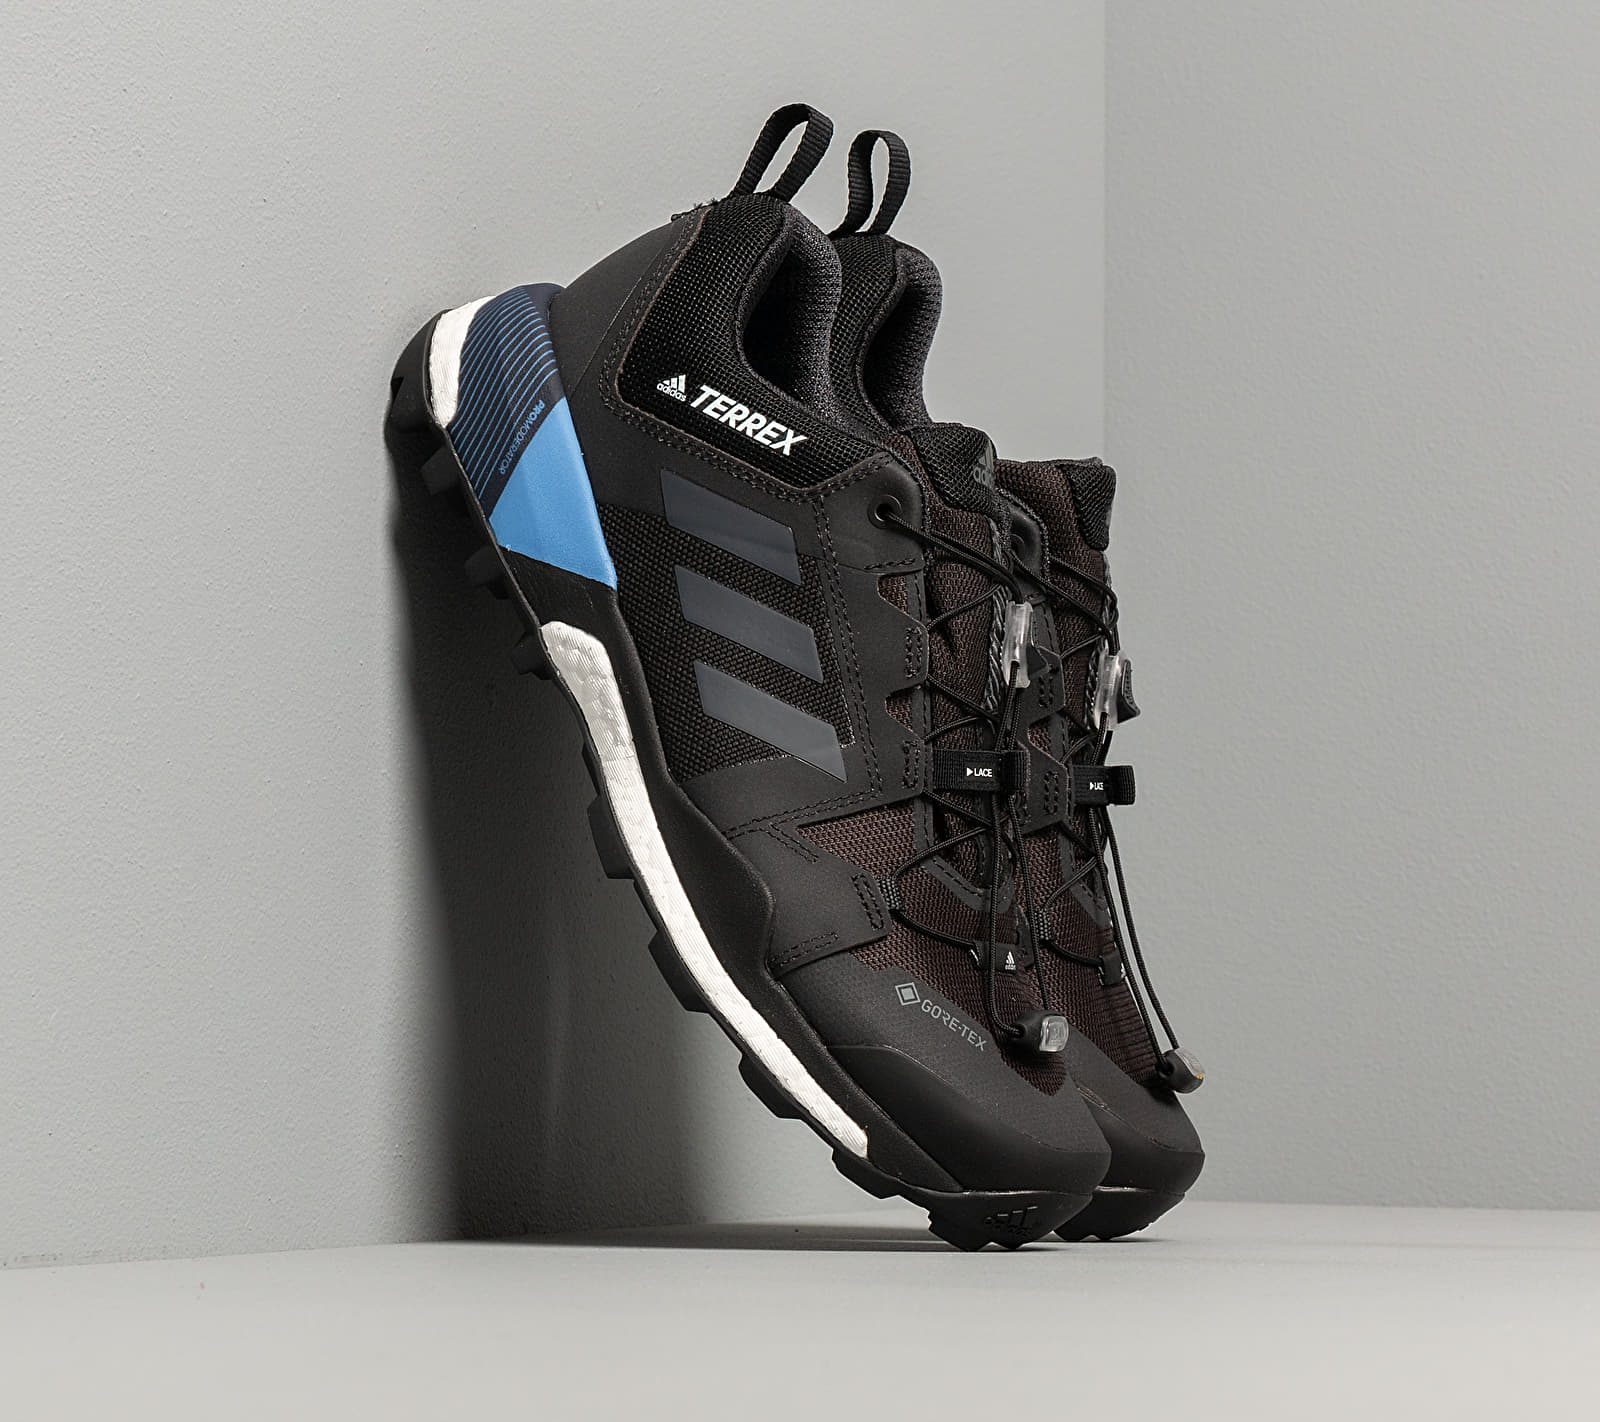 adidas Terrex Skychaser XT GTX W Core Black/ Grey Four/ Real Blue EUR 38 2/3